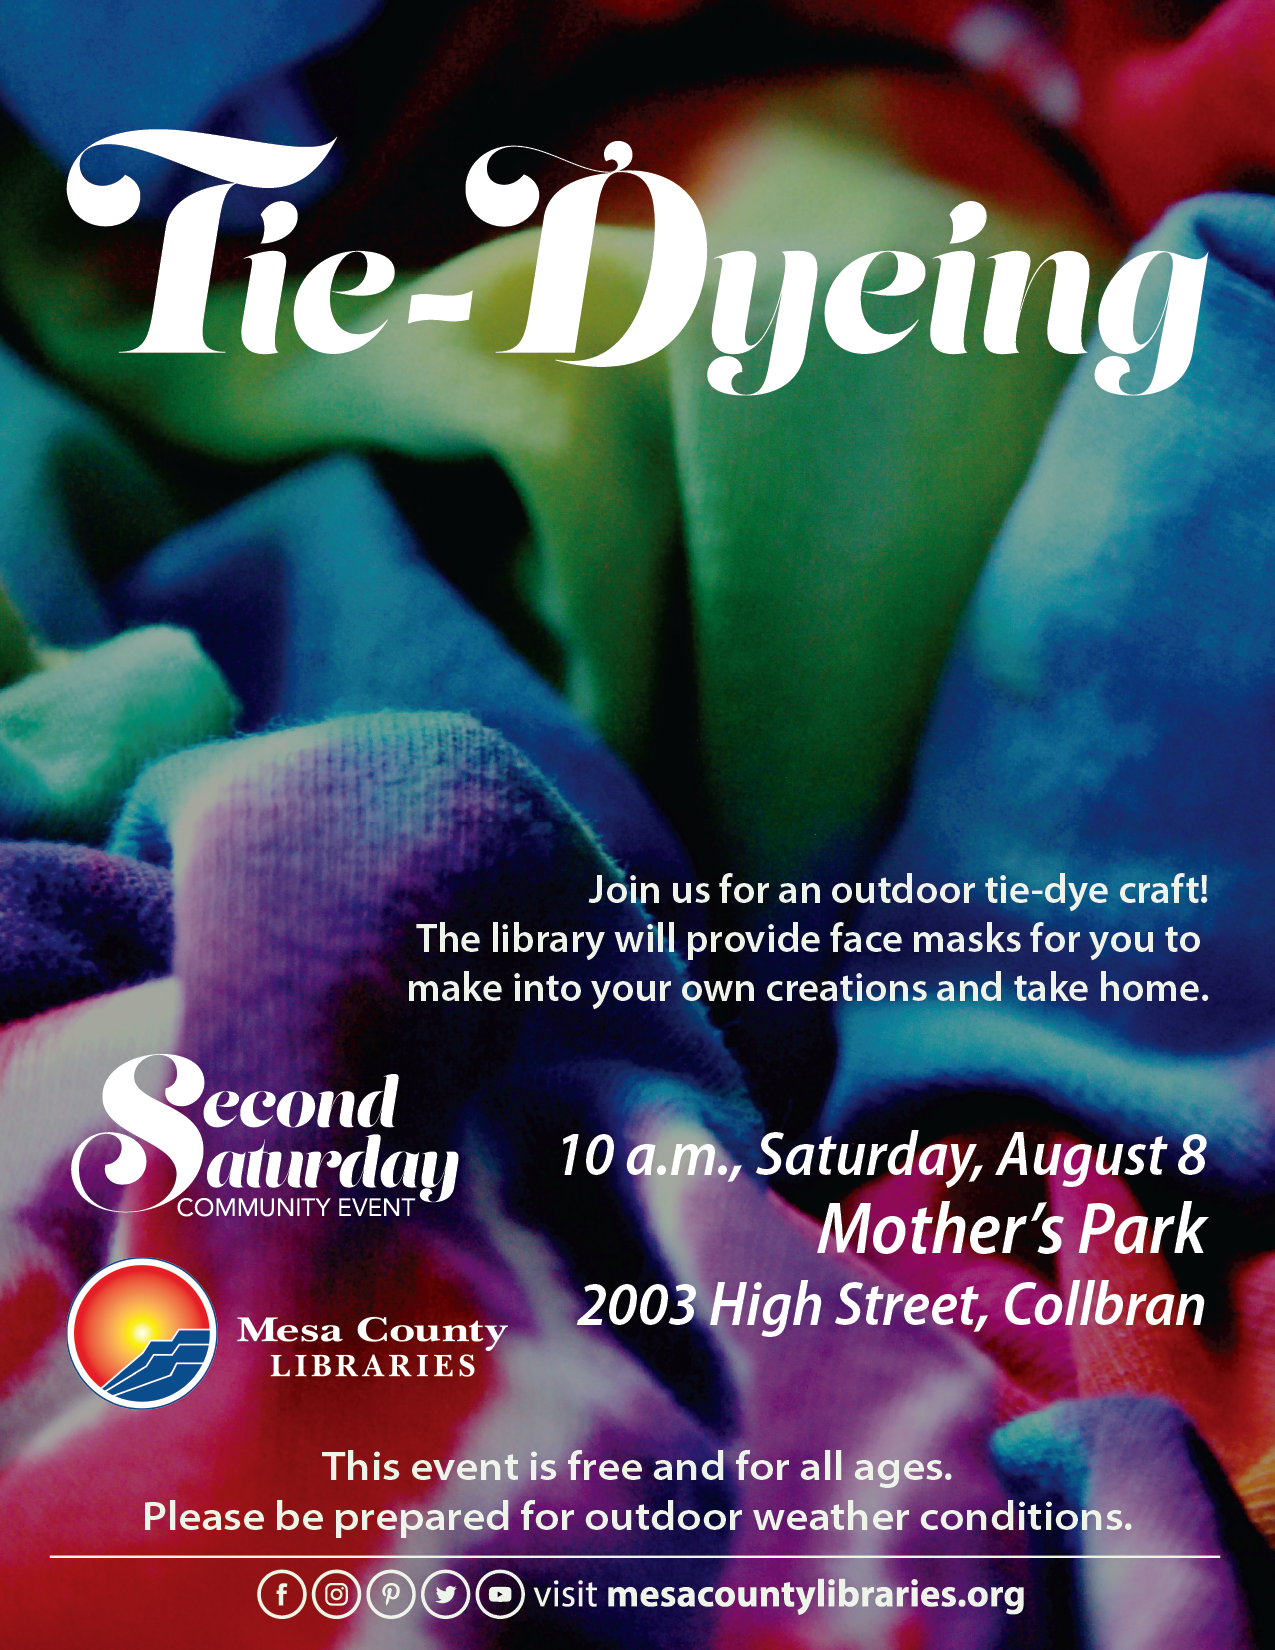 Tie-Dyeing - Second Saturday Community Event (Collbran)